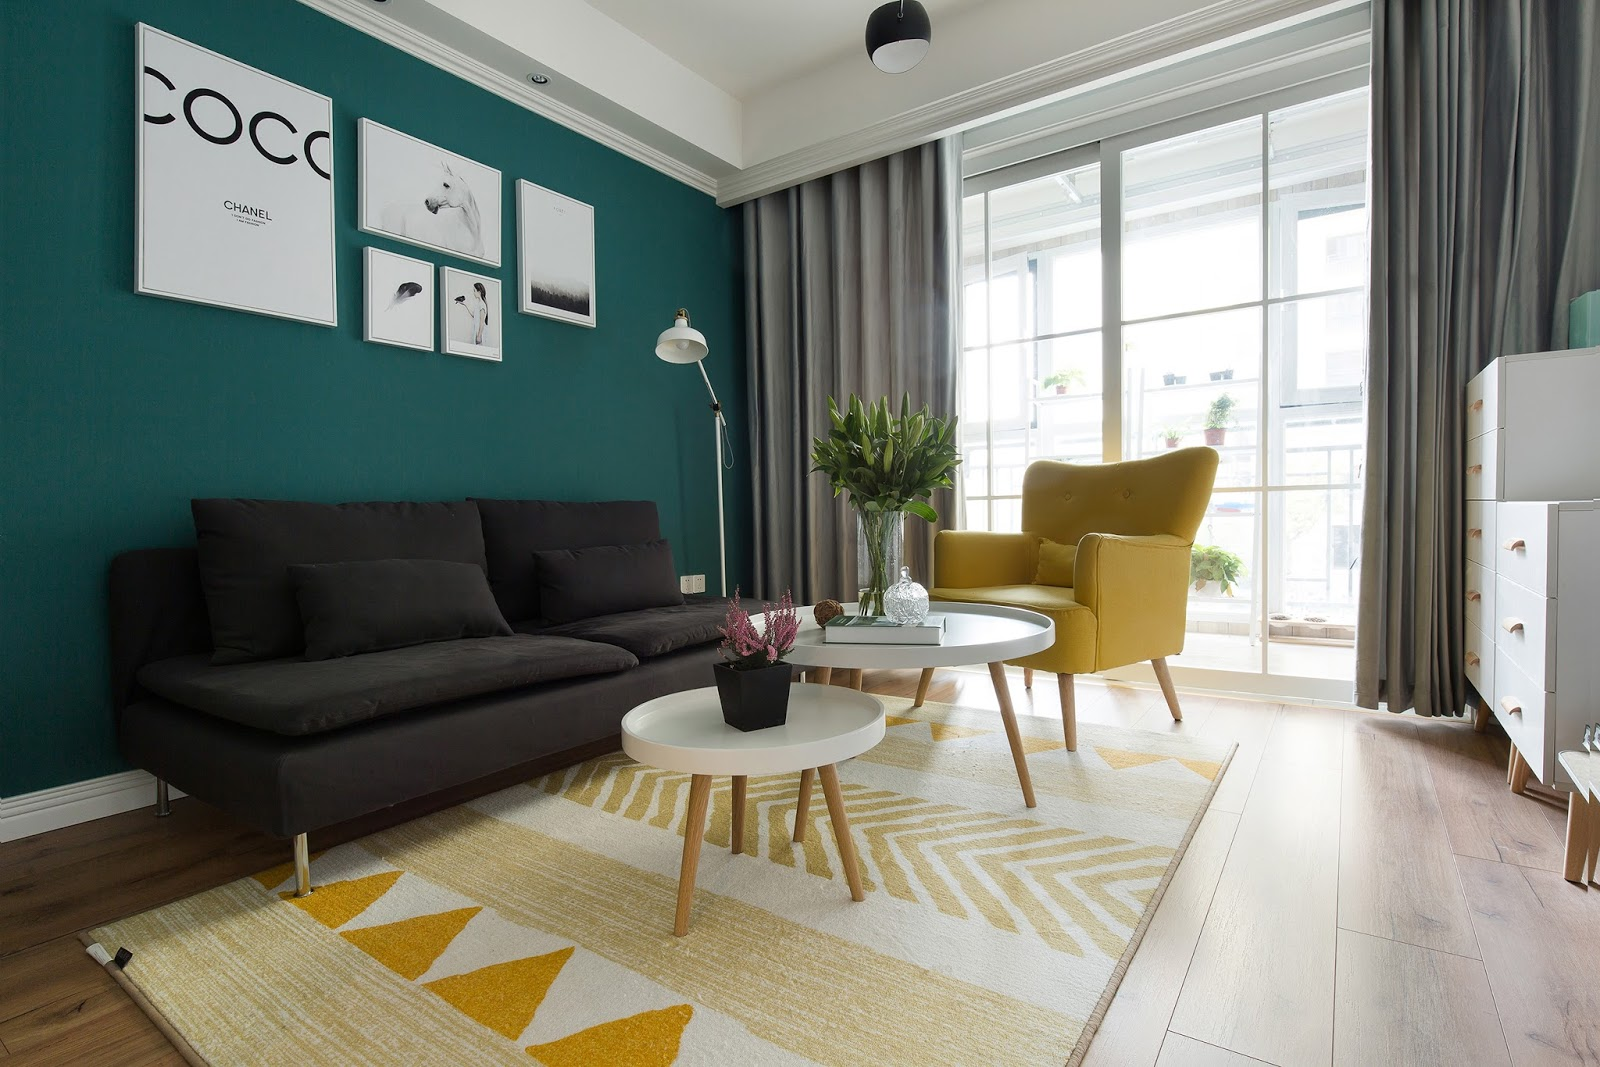 From Unknown Designer, This A A Modern Style That Brave In Playing With  Contrast Colors. The Decorative Wwoden Floor Is Very Strong, Giving The  Whole Design ...